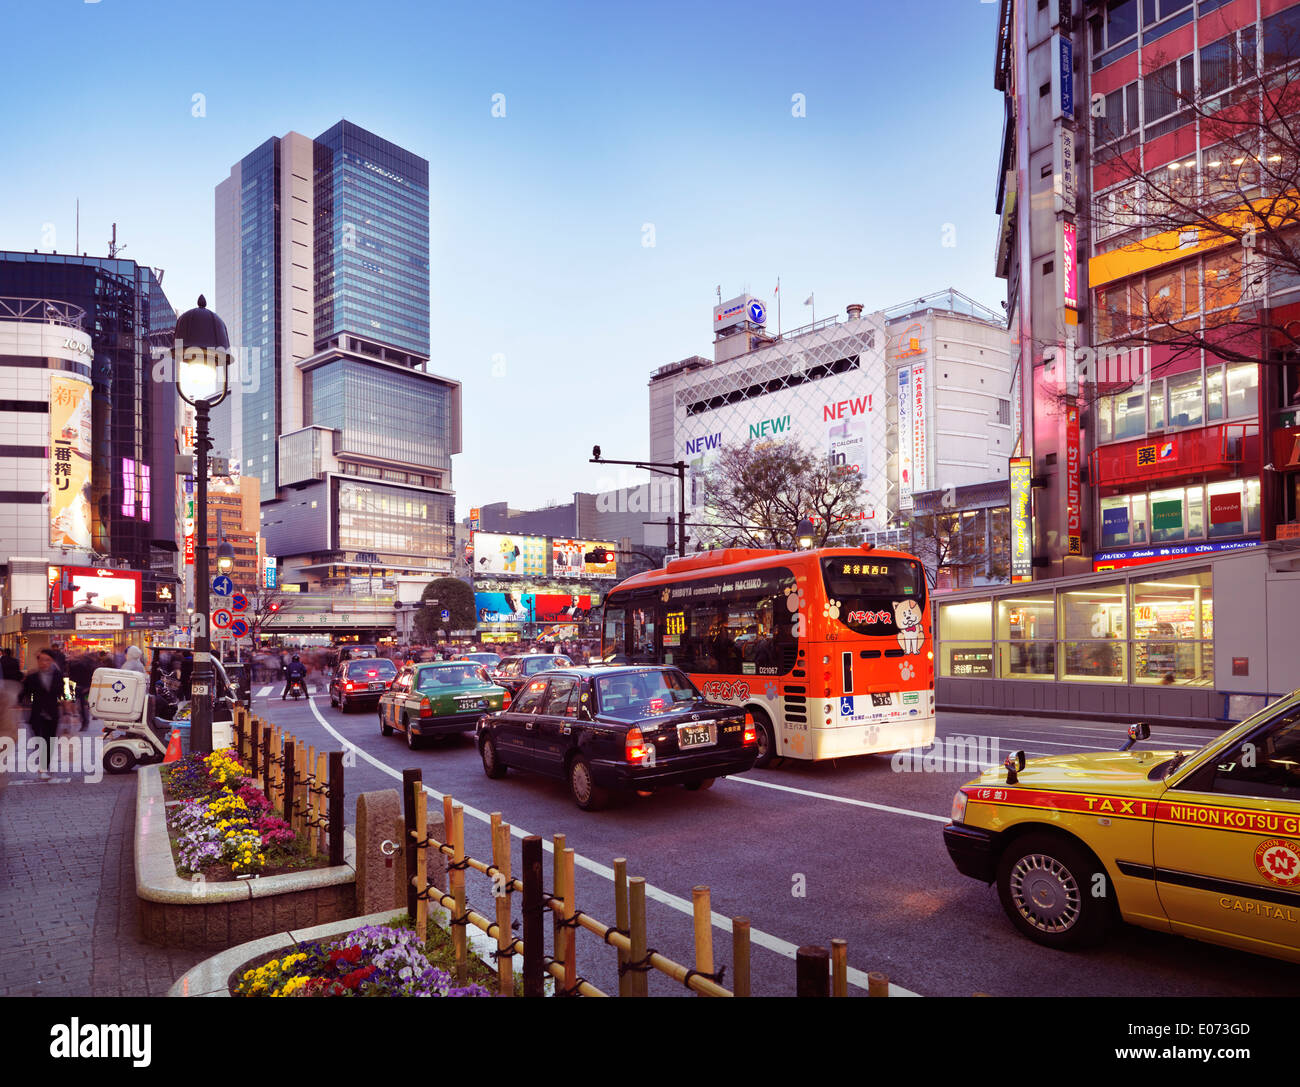 Taxi cabs in Tokyo near Shibuya station intersection. Tokyo, Japan. - Stock Image